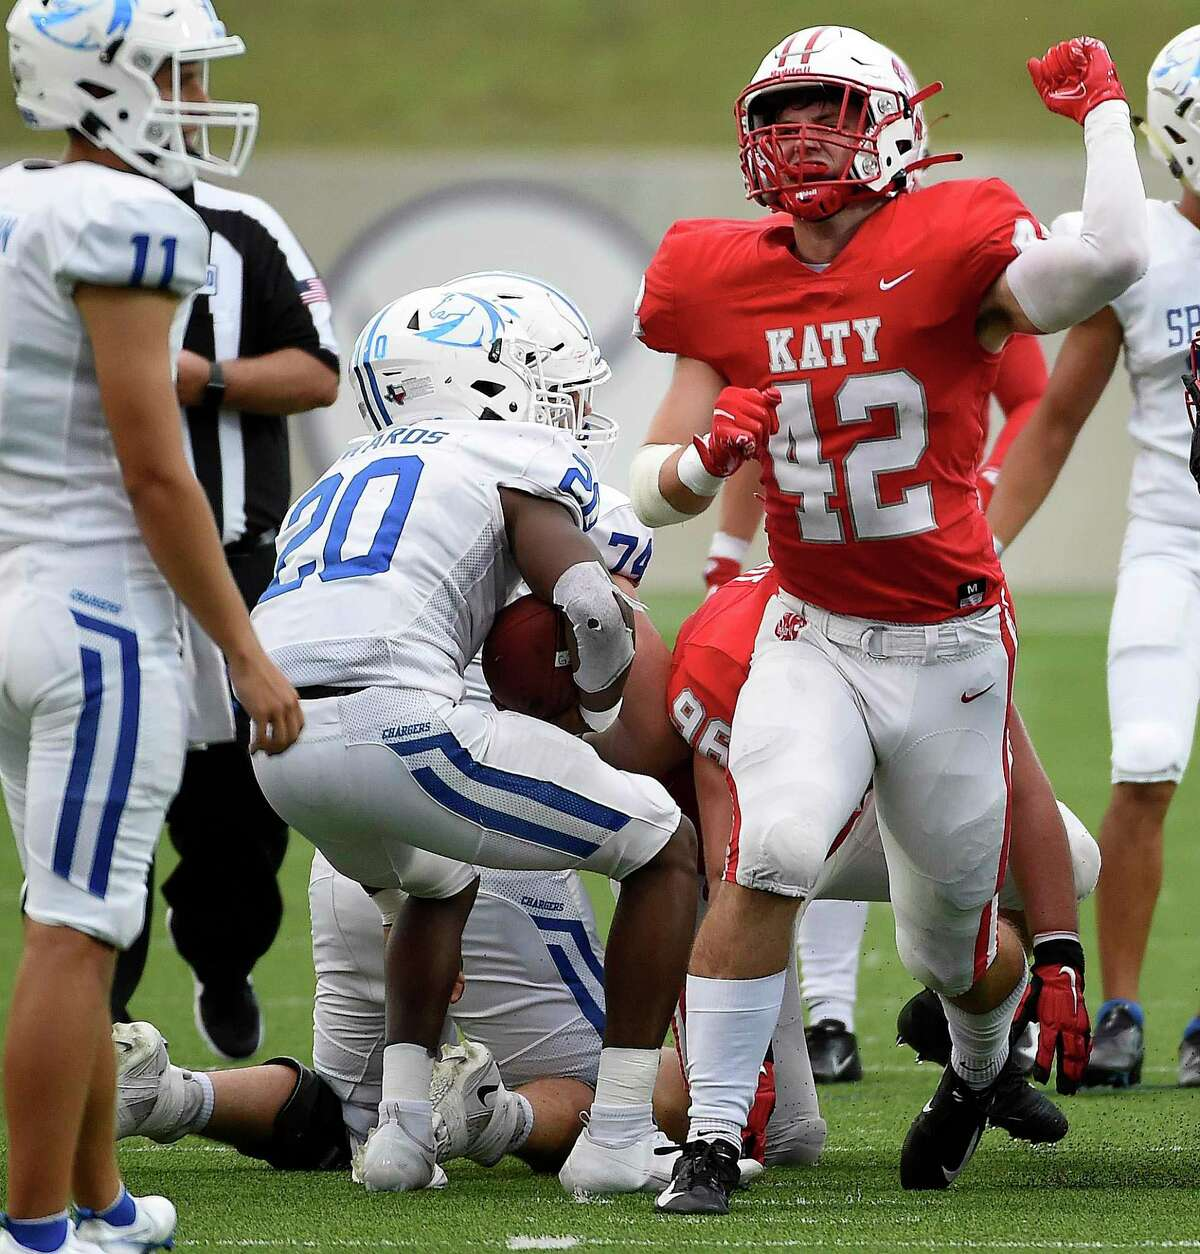 Katy linebacker Ty Kana (42) celebrates his tackle of Clear Springs running back Xai-Shaun Edwards (20) during the first half of a high school football game, Friday, Aug. 27, 2021, in Katy.